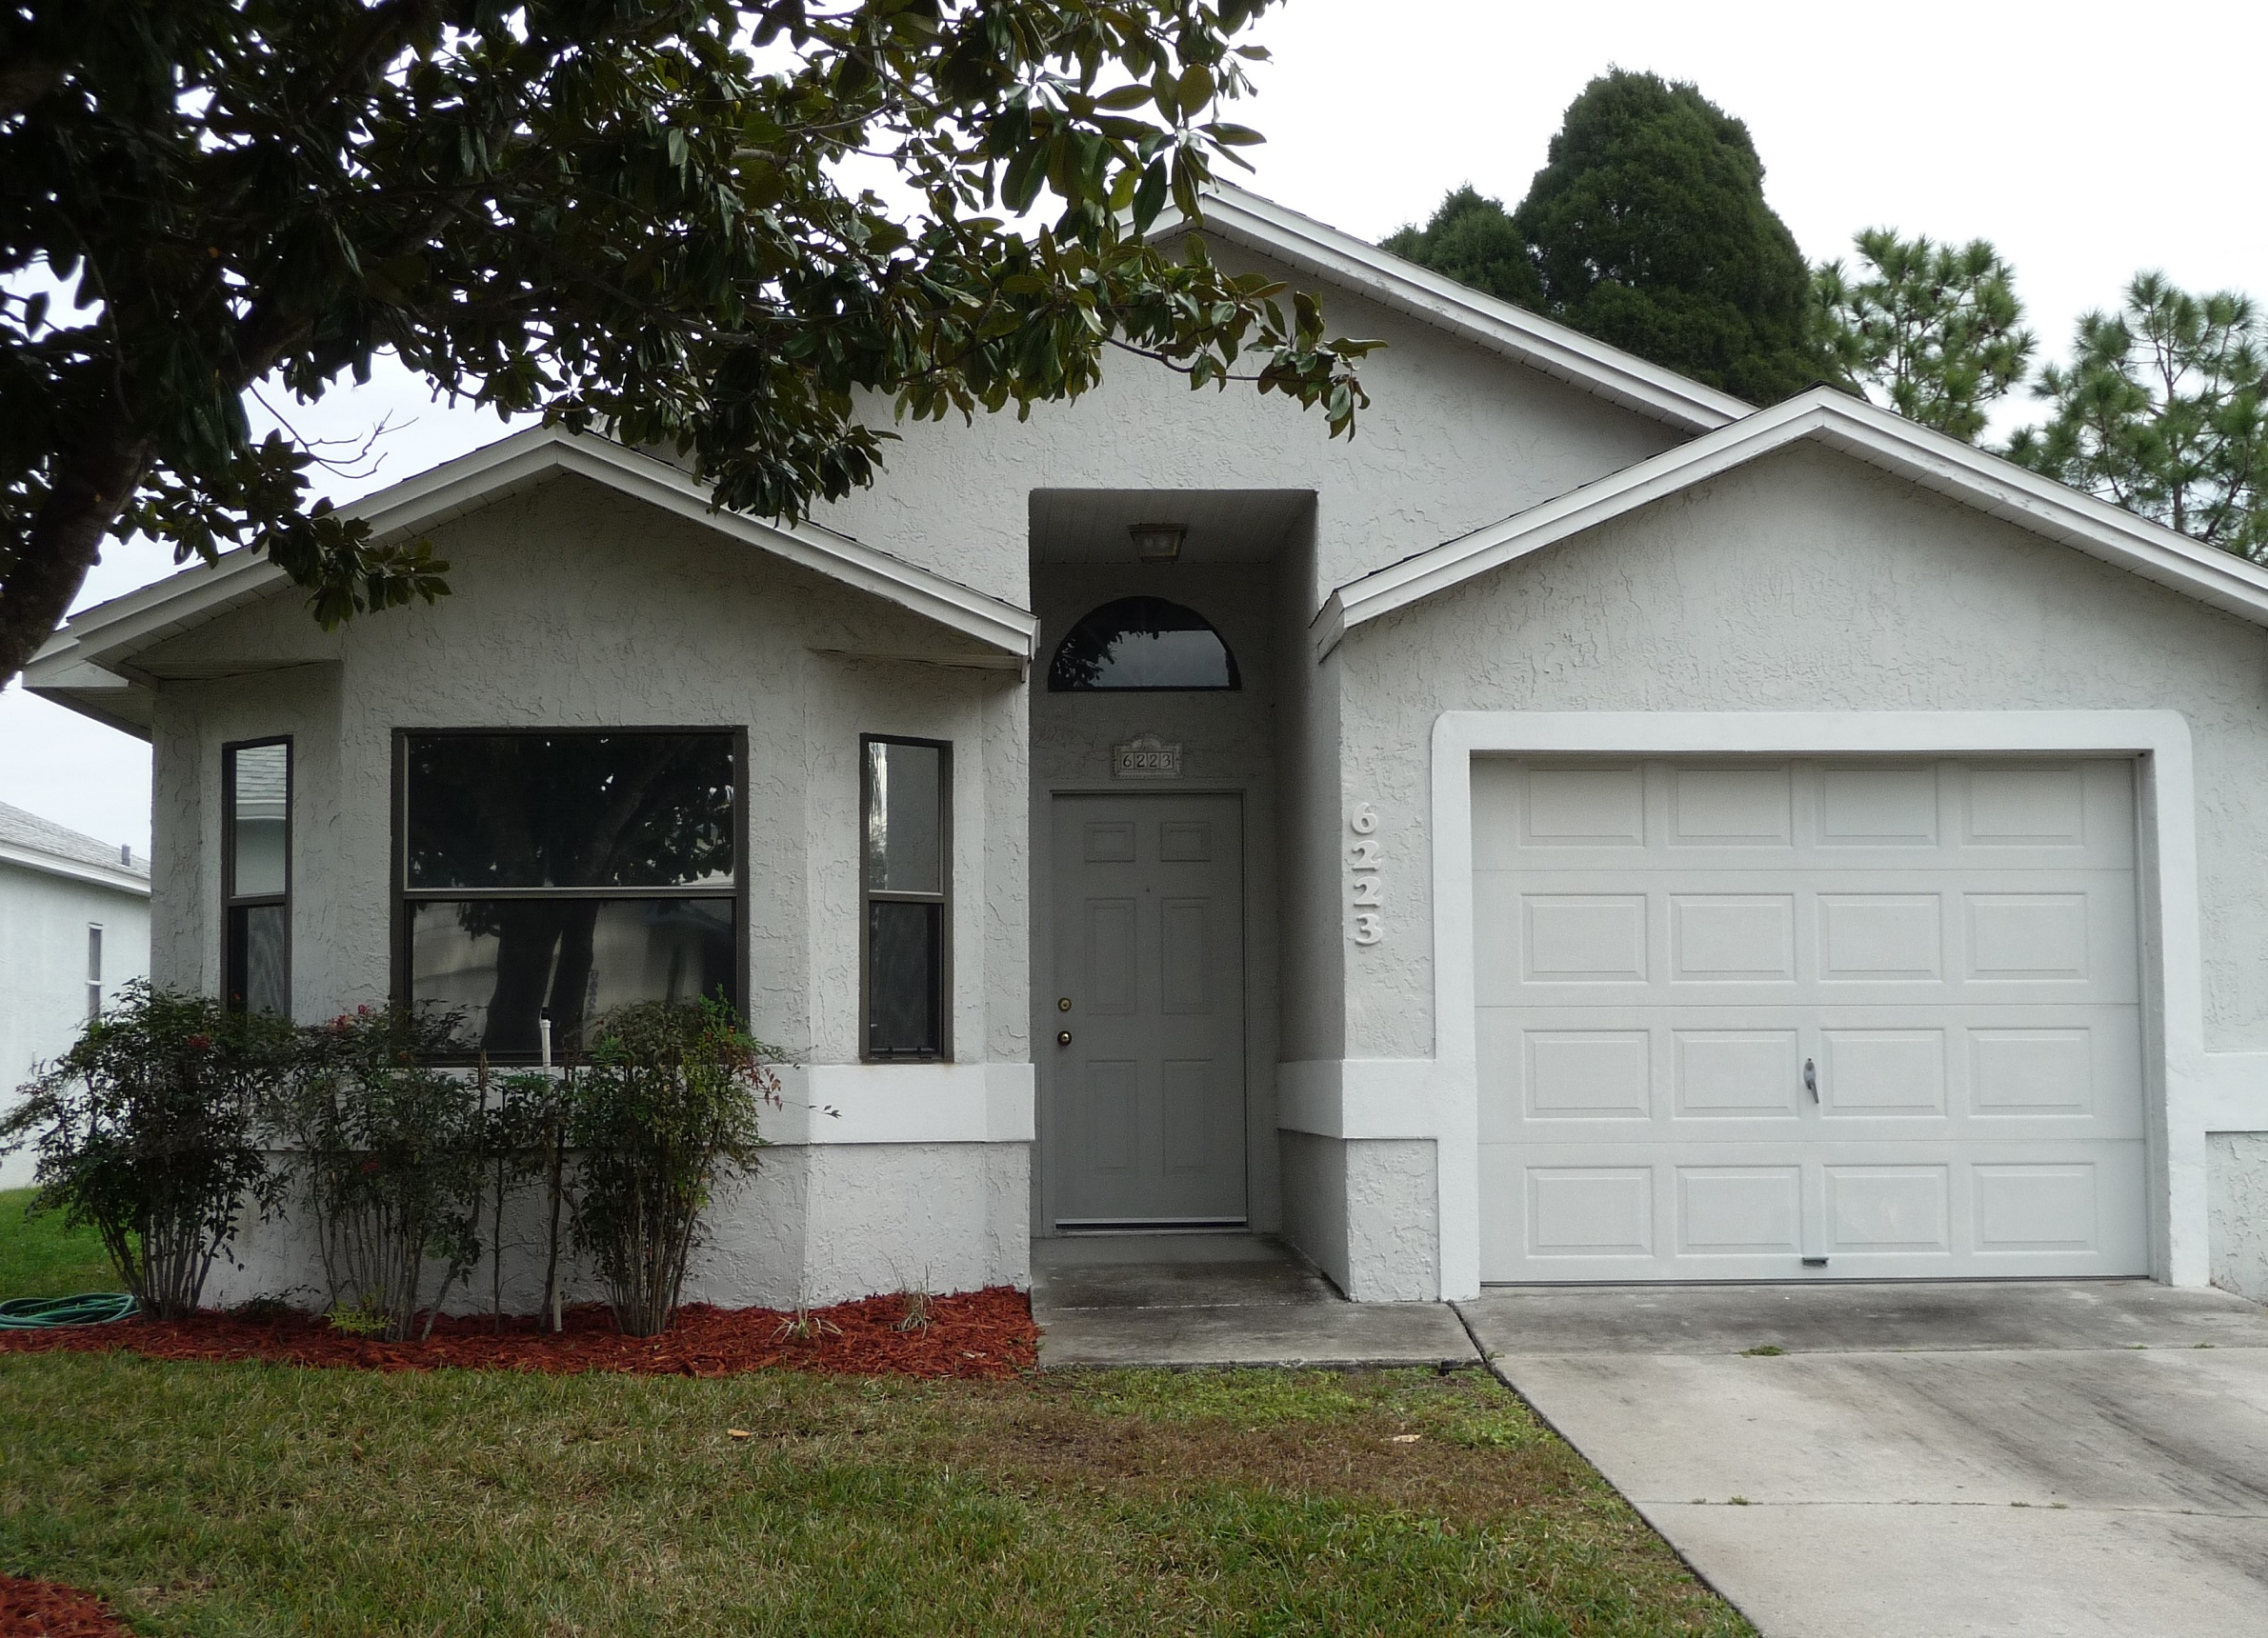 Affordable Houses for Rent near Me